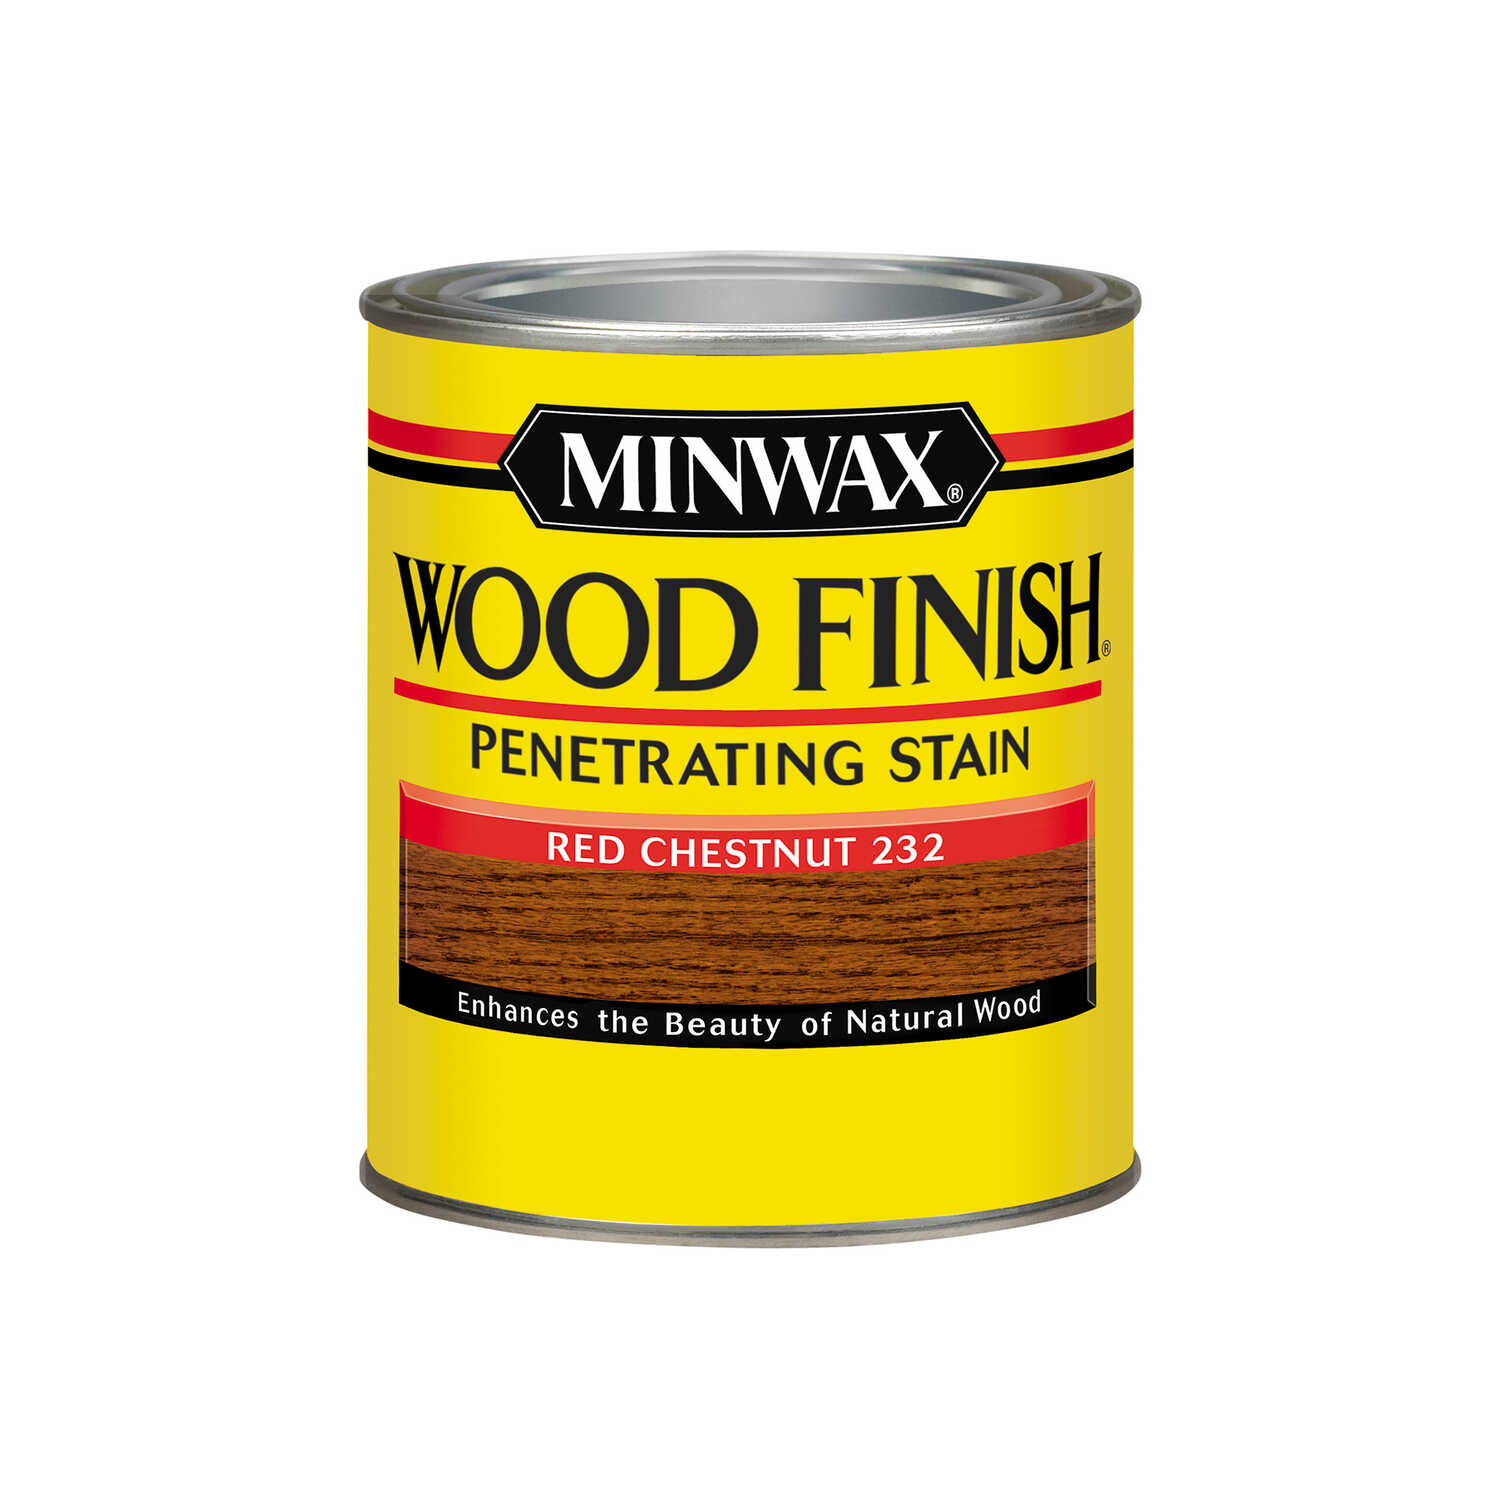 Minwax  Wood Finish  Semi-Transparent  Red Chestnut  Oil-Based  Oil  Wood Stain  1 qt.